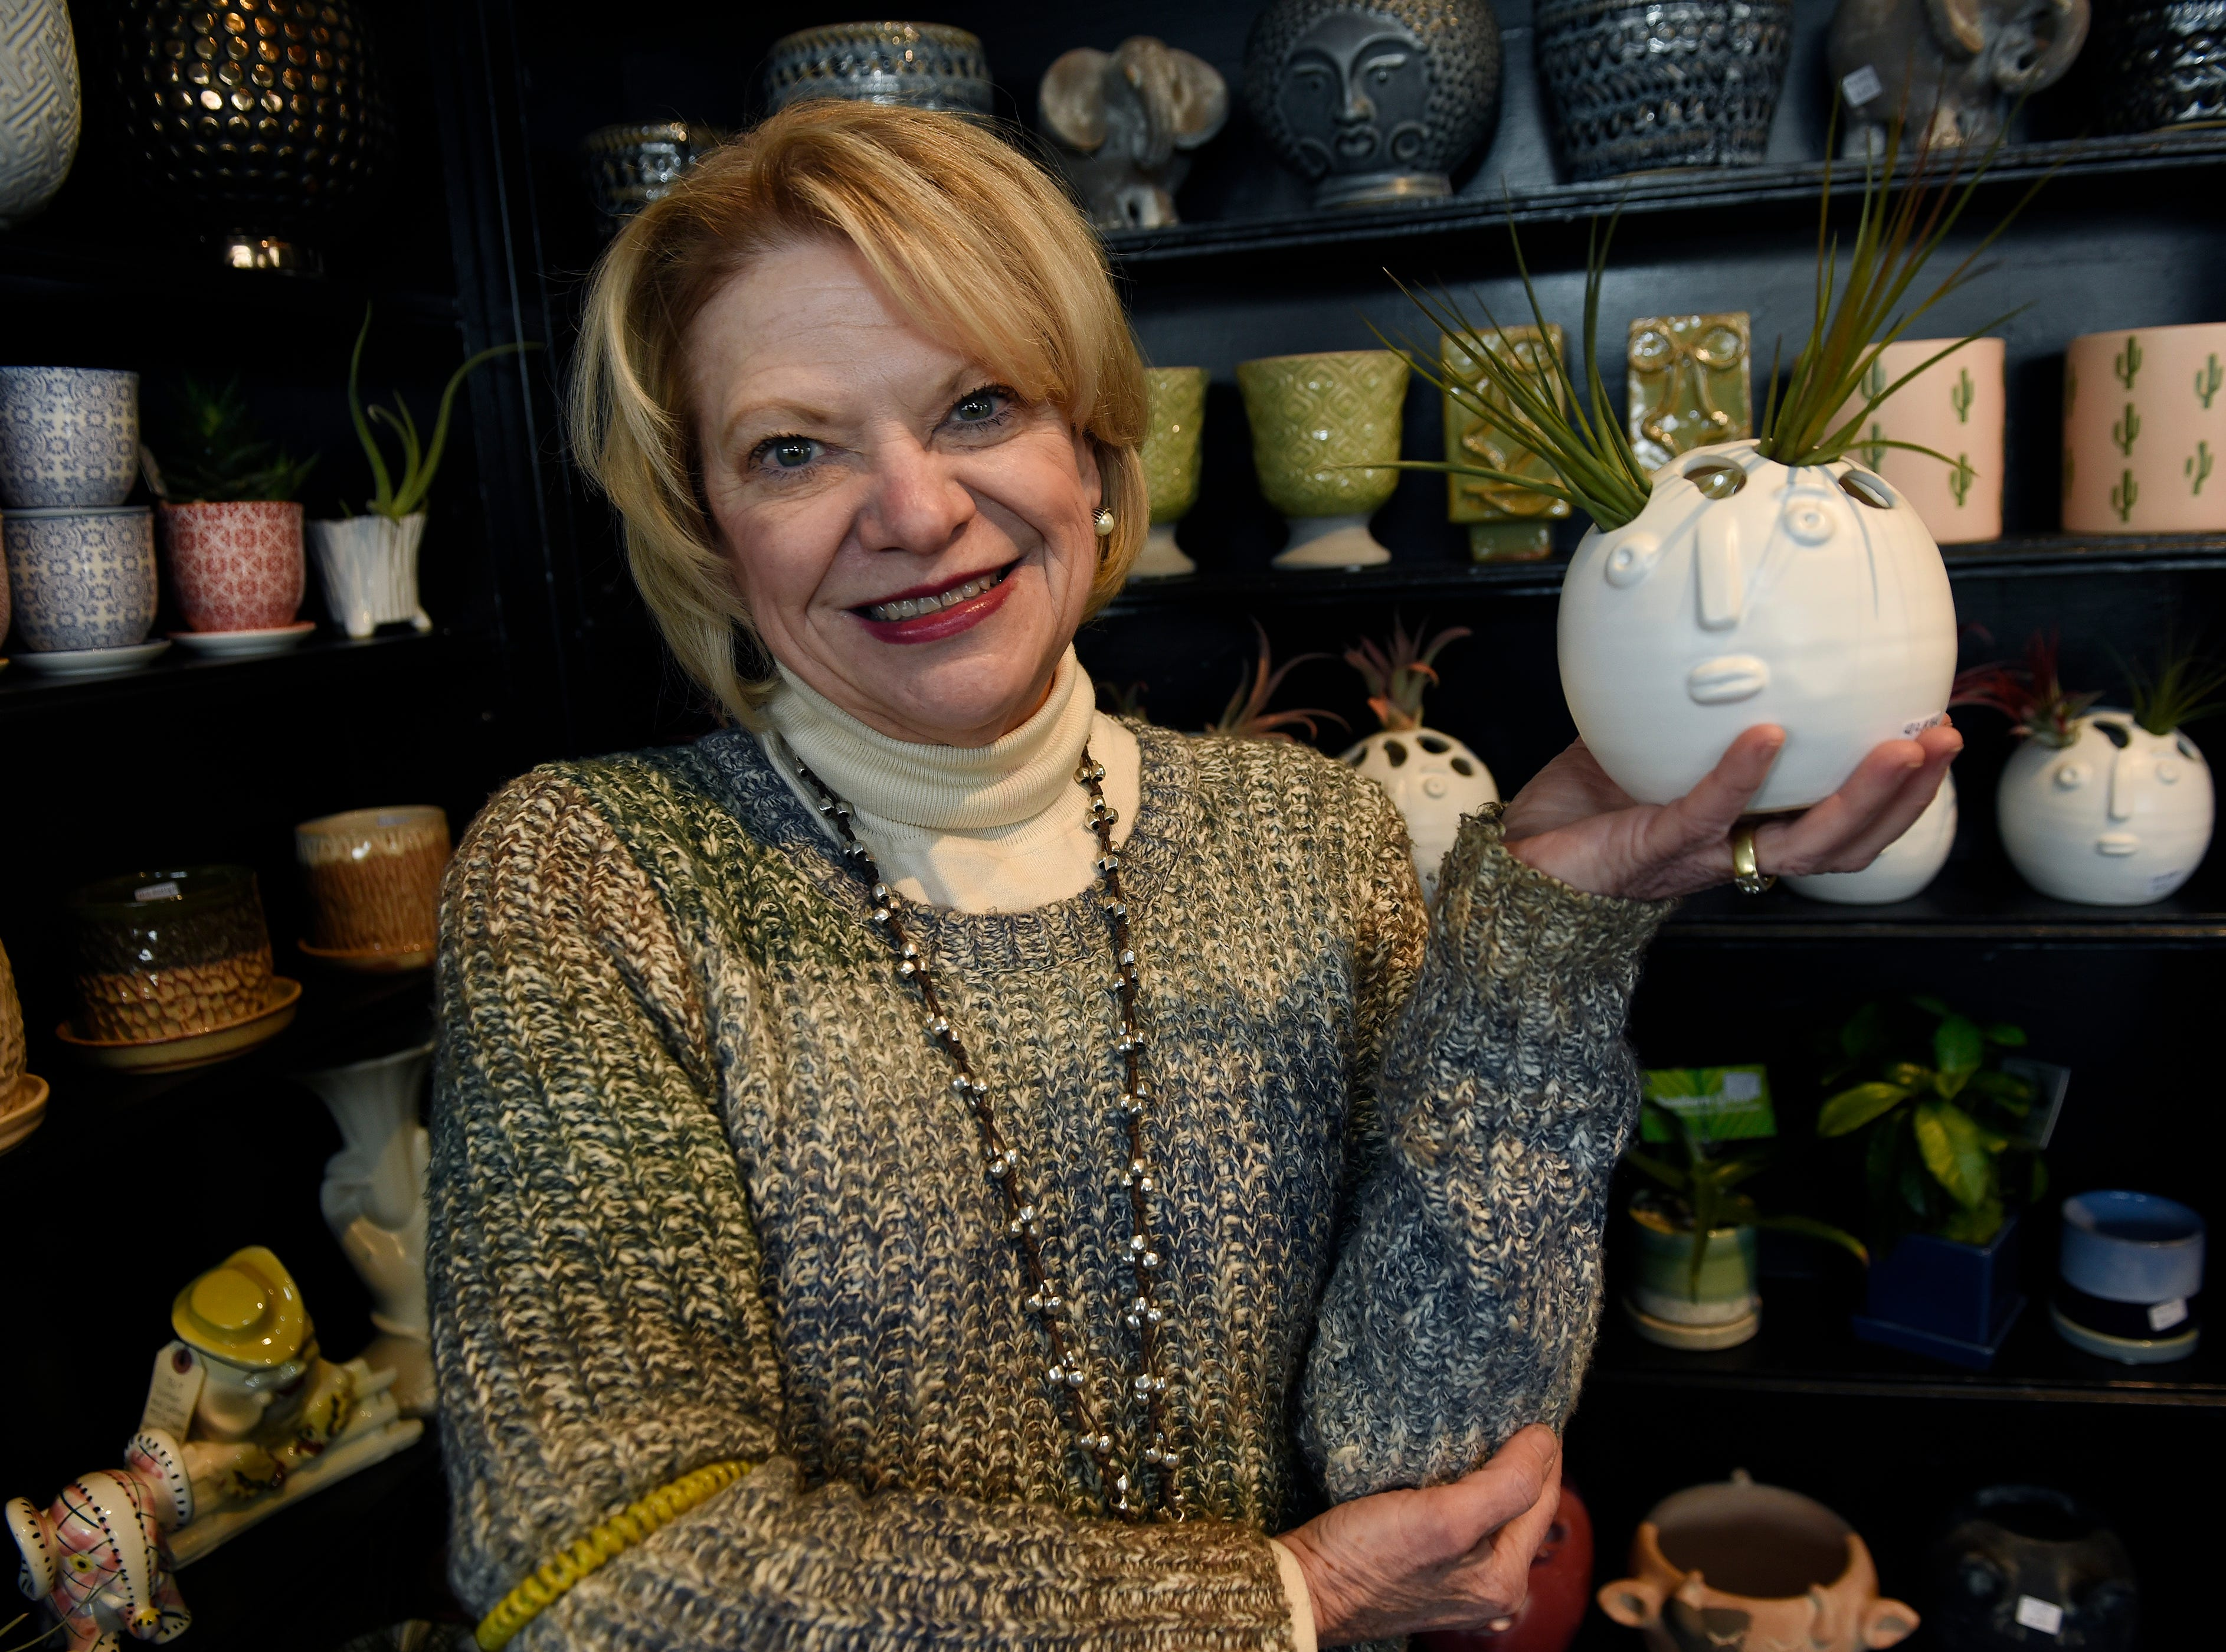 When Kelly Green, 59, owner of Southern Green, first got into the plant business about seven years ago, head-shaped planters were very hard to find. They've grown significantly in popularity, she says.